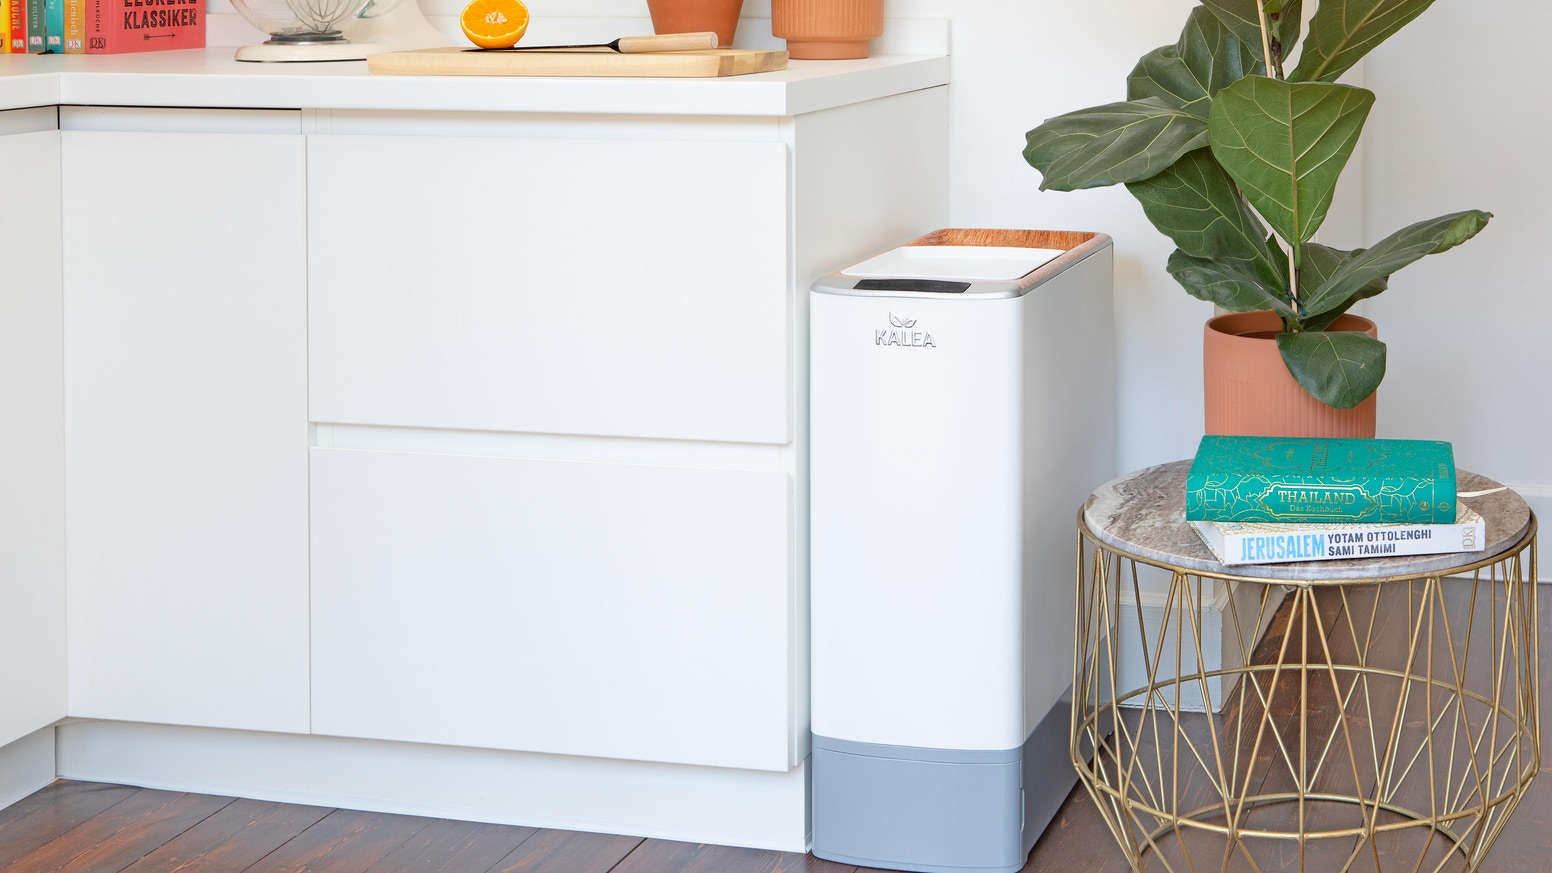 KALEA is a fully automatic kitchen composter, which unites a natural composting process with an unique and smart technology